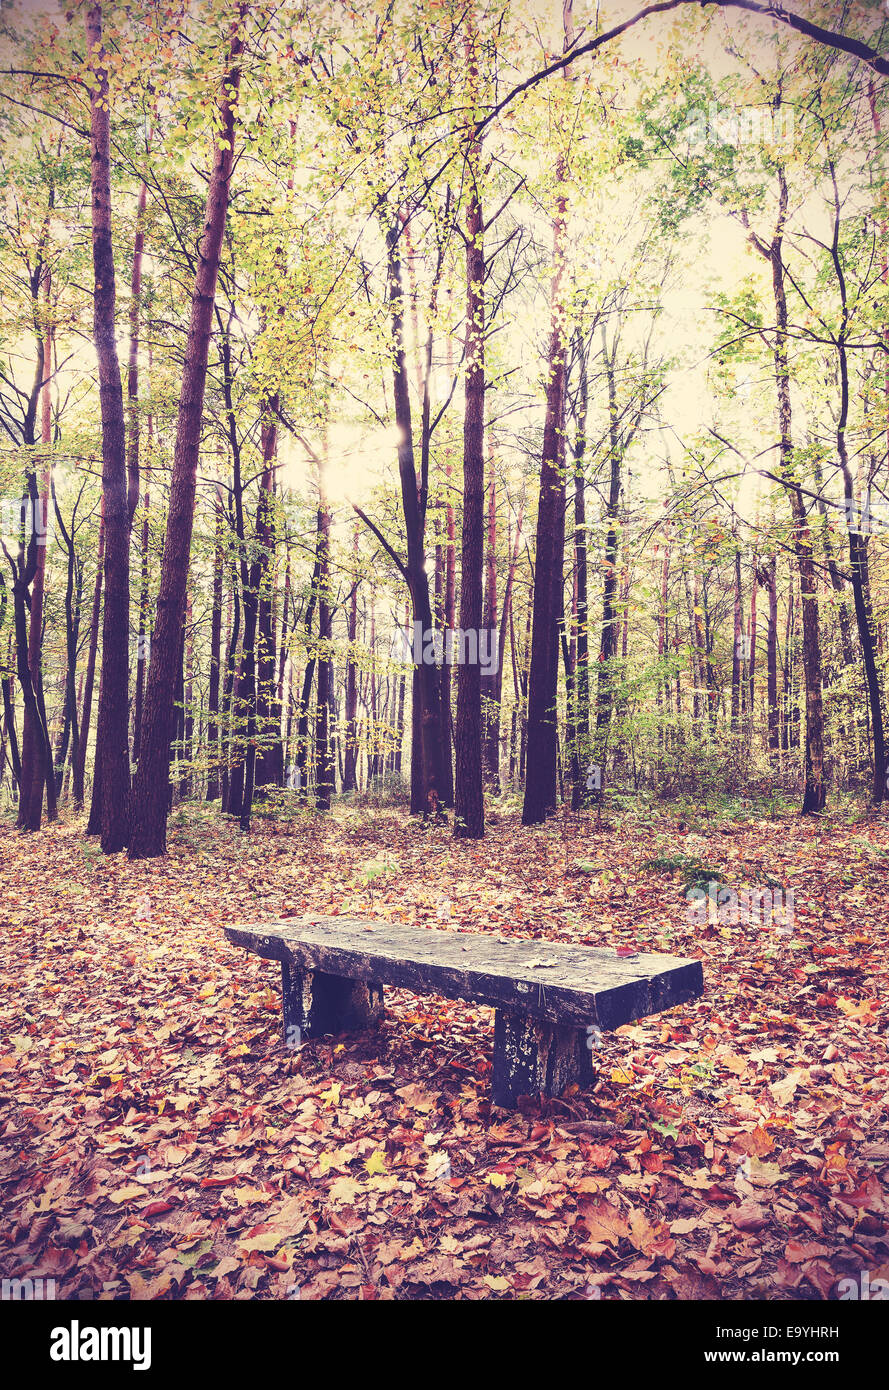 Vintage filtered picture of bench in a forest. - Stock Image